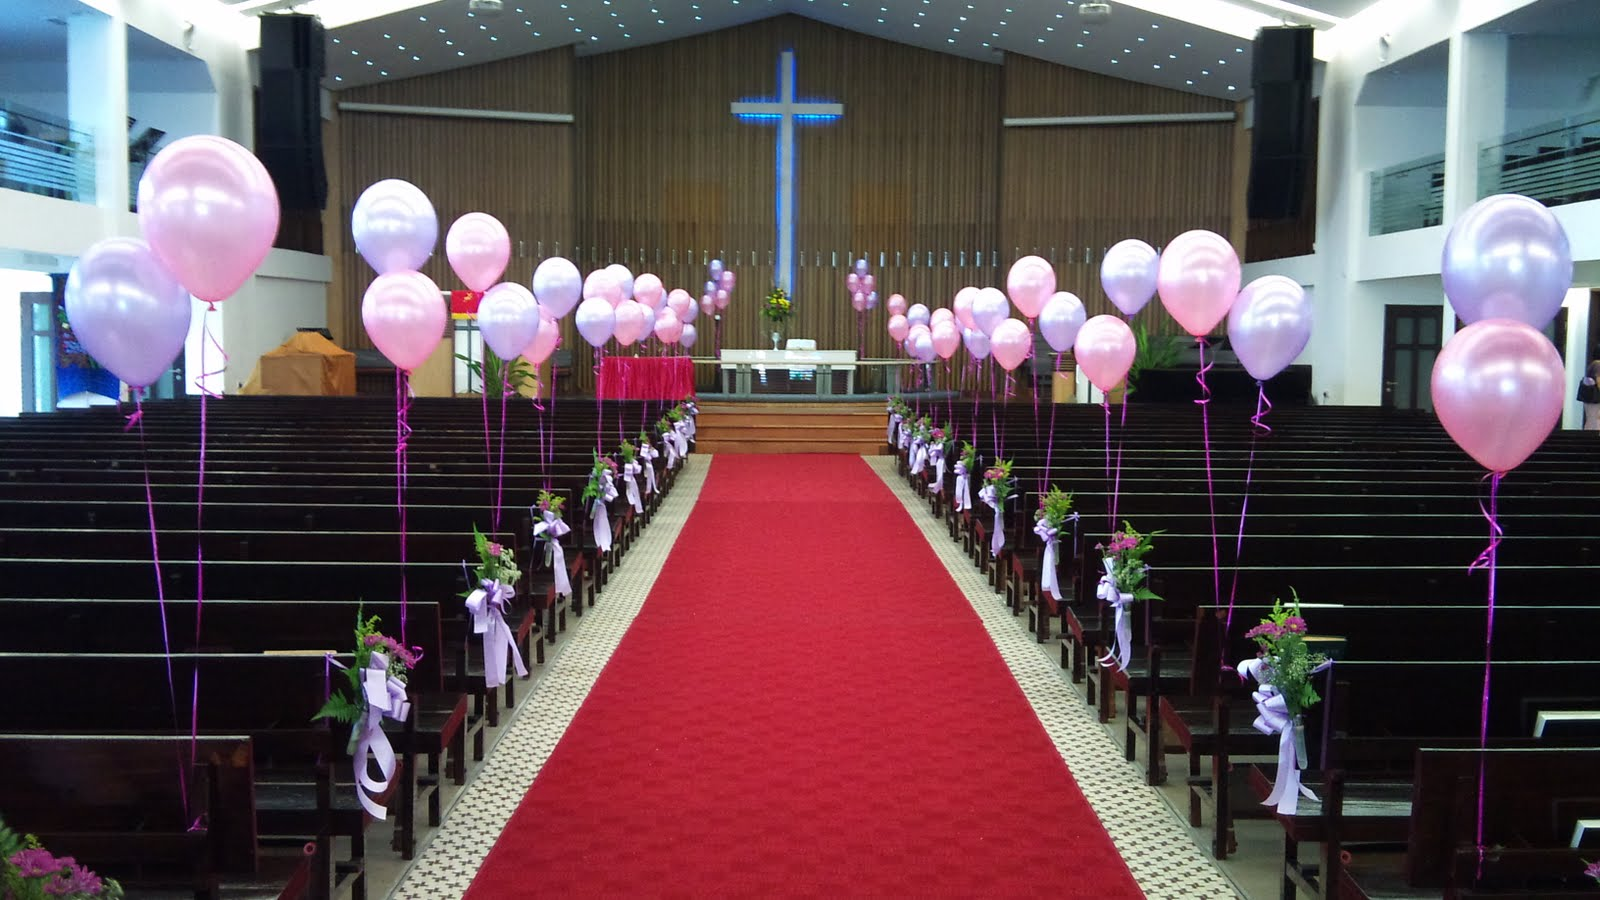 Simple Christmas Decorations For Church Balloon Weddings Birthday Parties